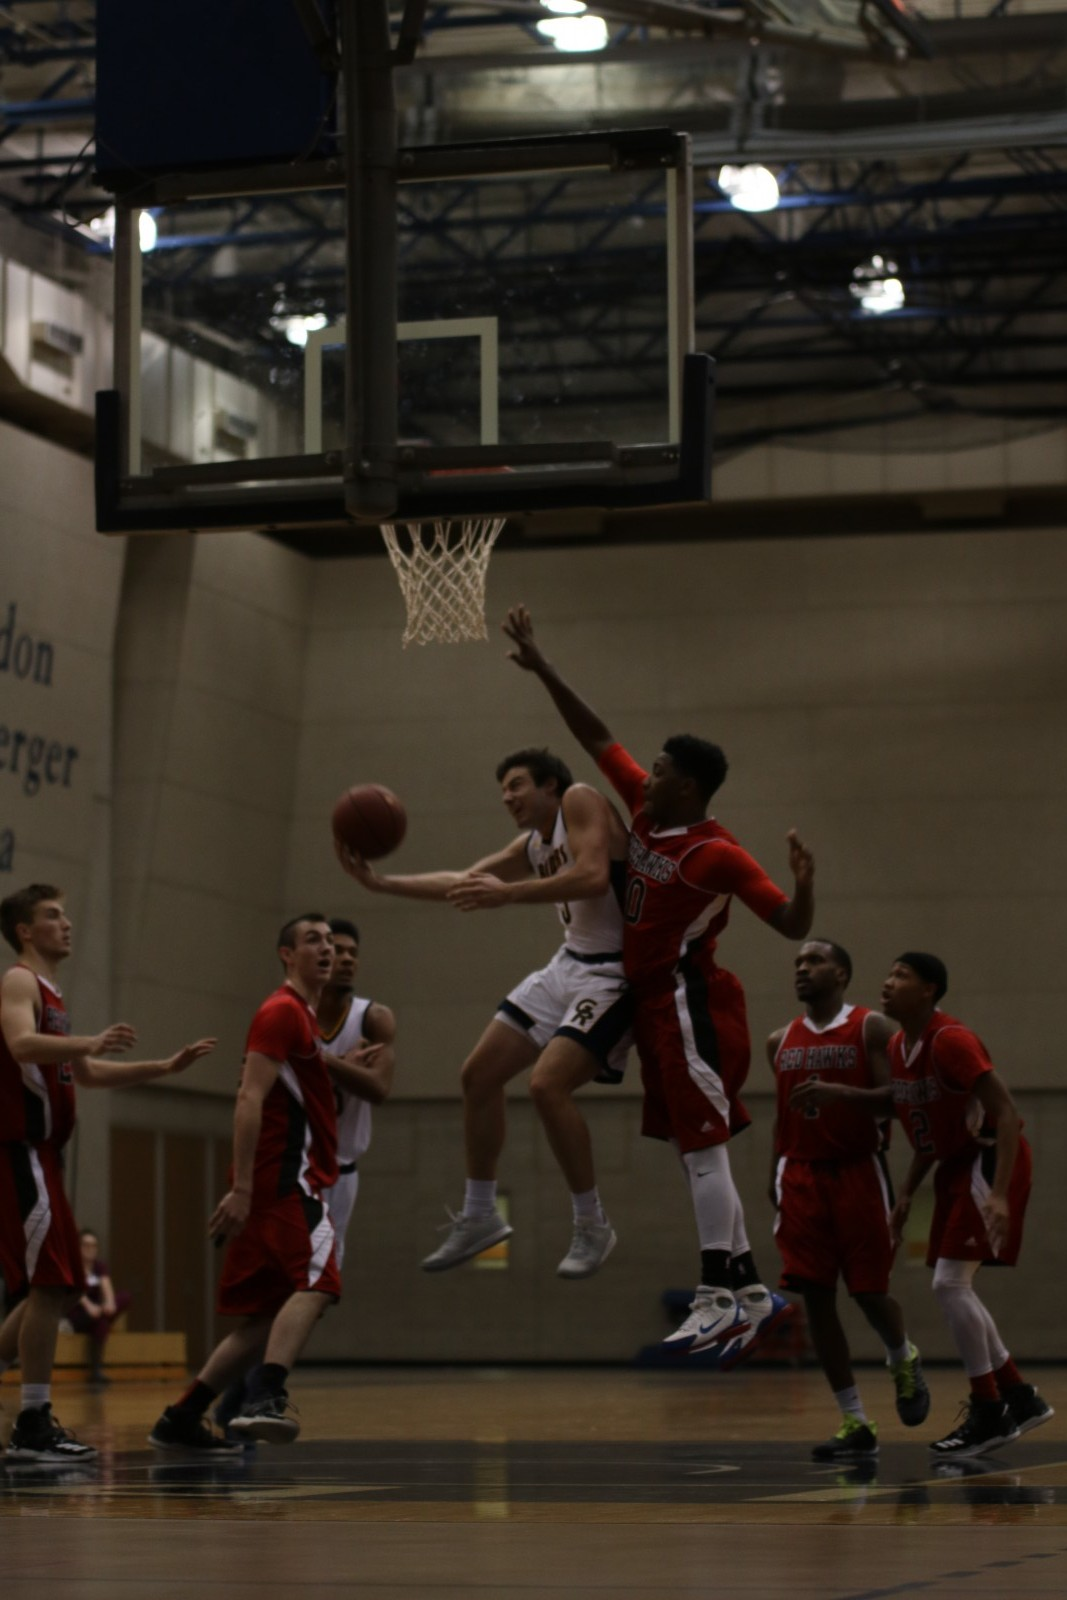 Freshman Guard, #5, Zach Pangborn going up for a contested layup against Lake Michigan College.